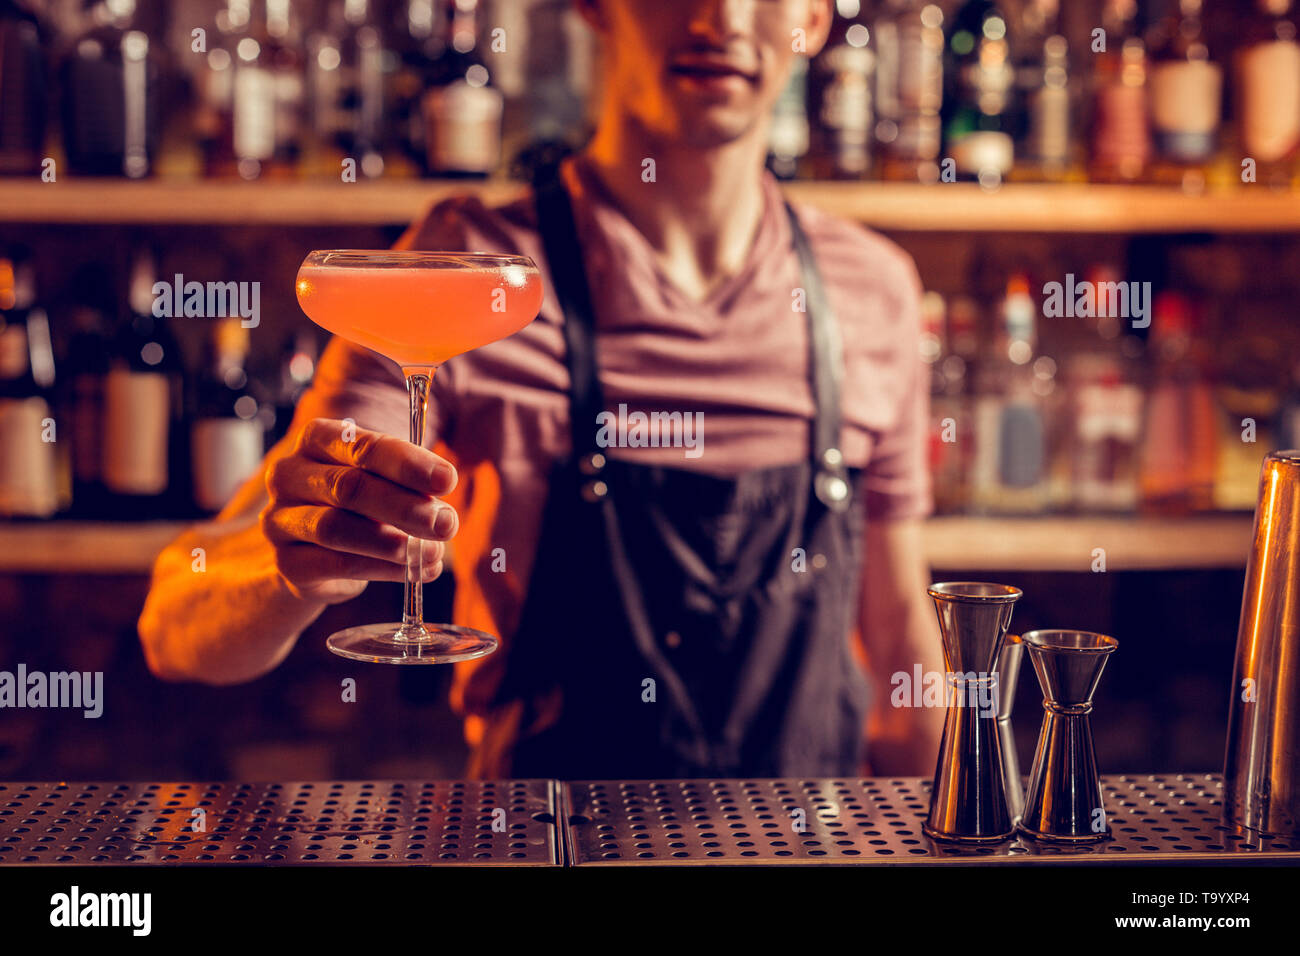 Barman wearing apron showing nice alcohol cocktail - Stock Image